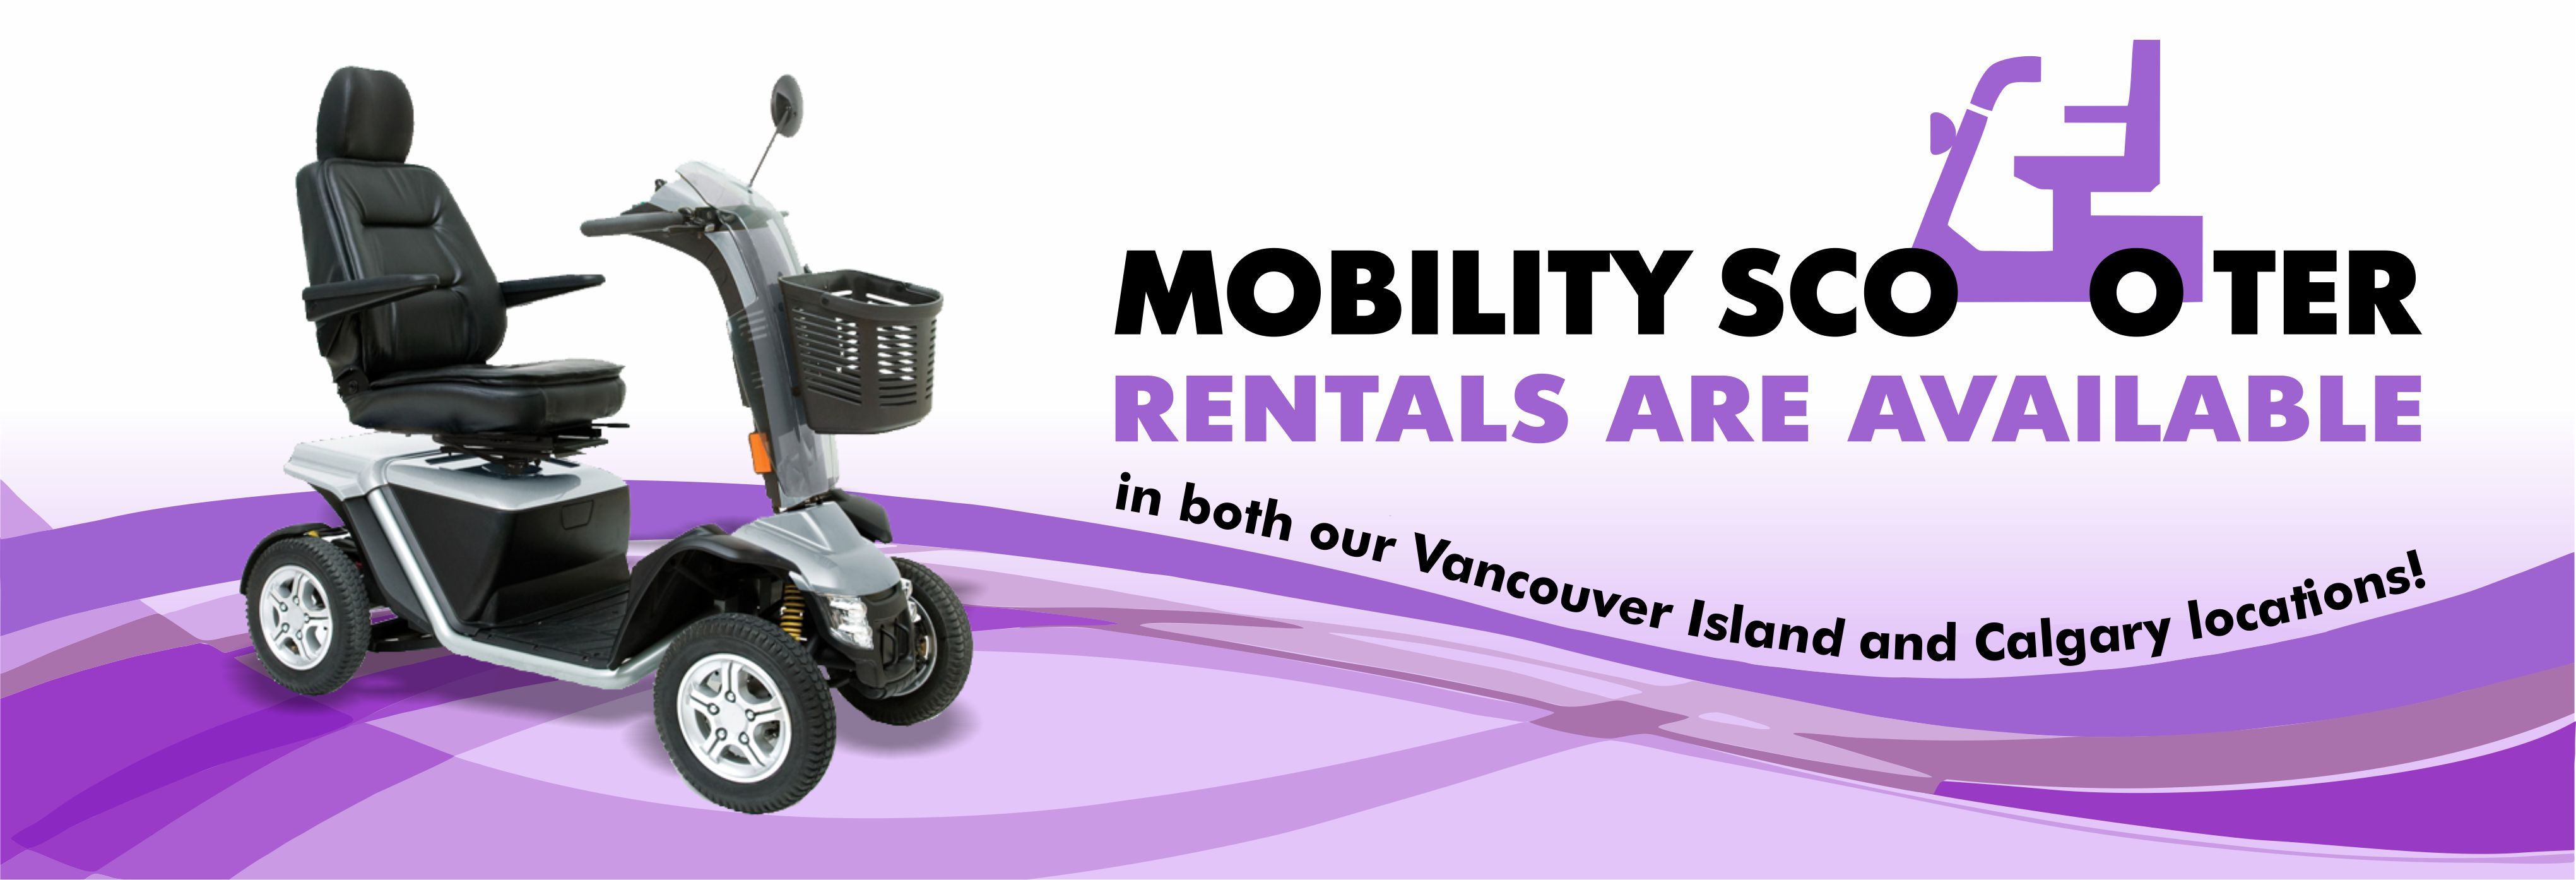 Mobility Scooter Rentals Sidney BC | Knee Scooter | Sidney